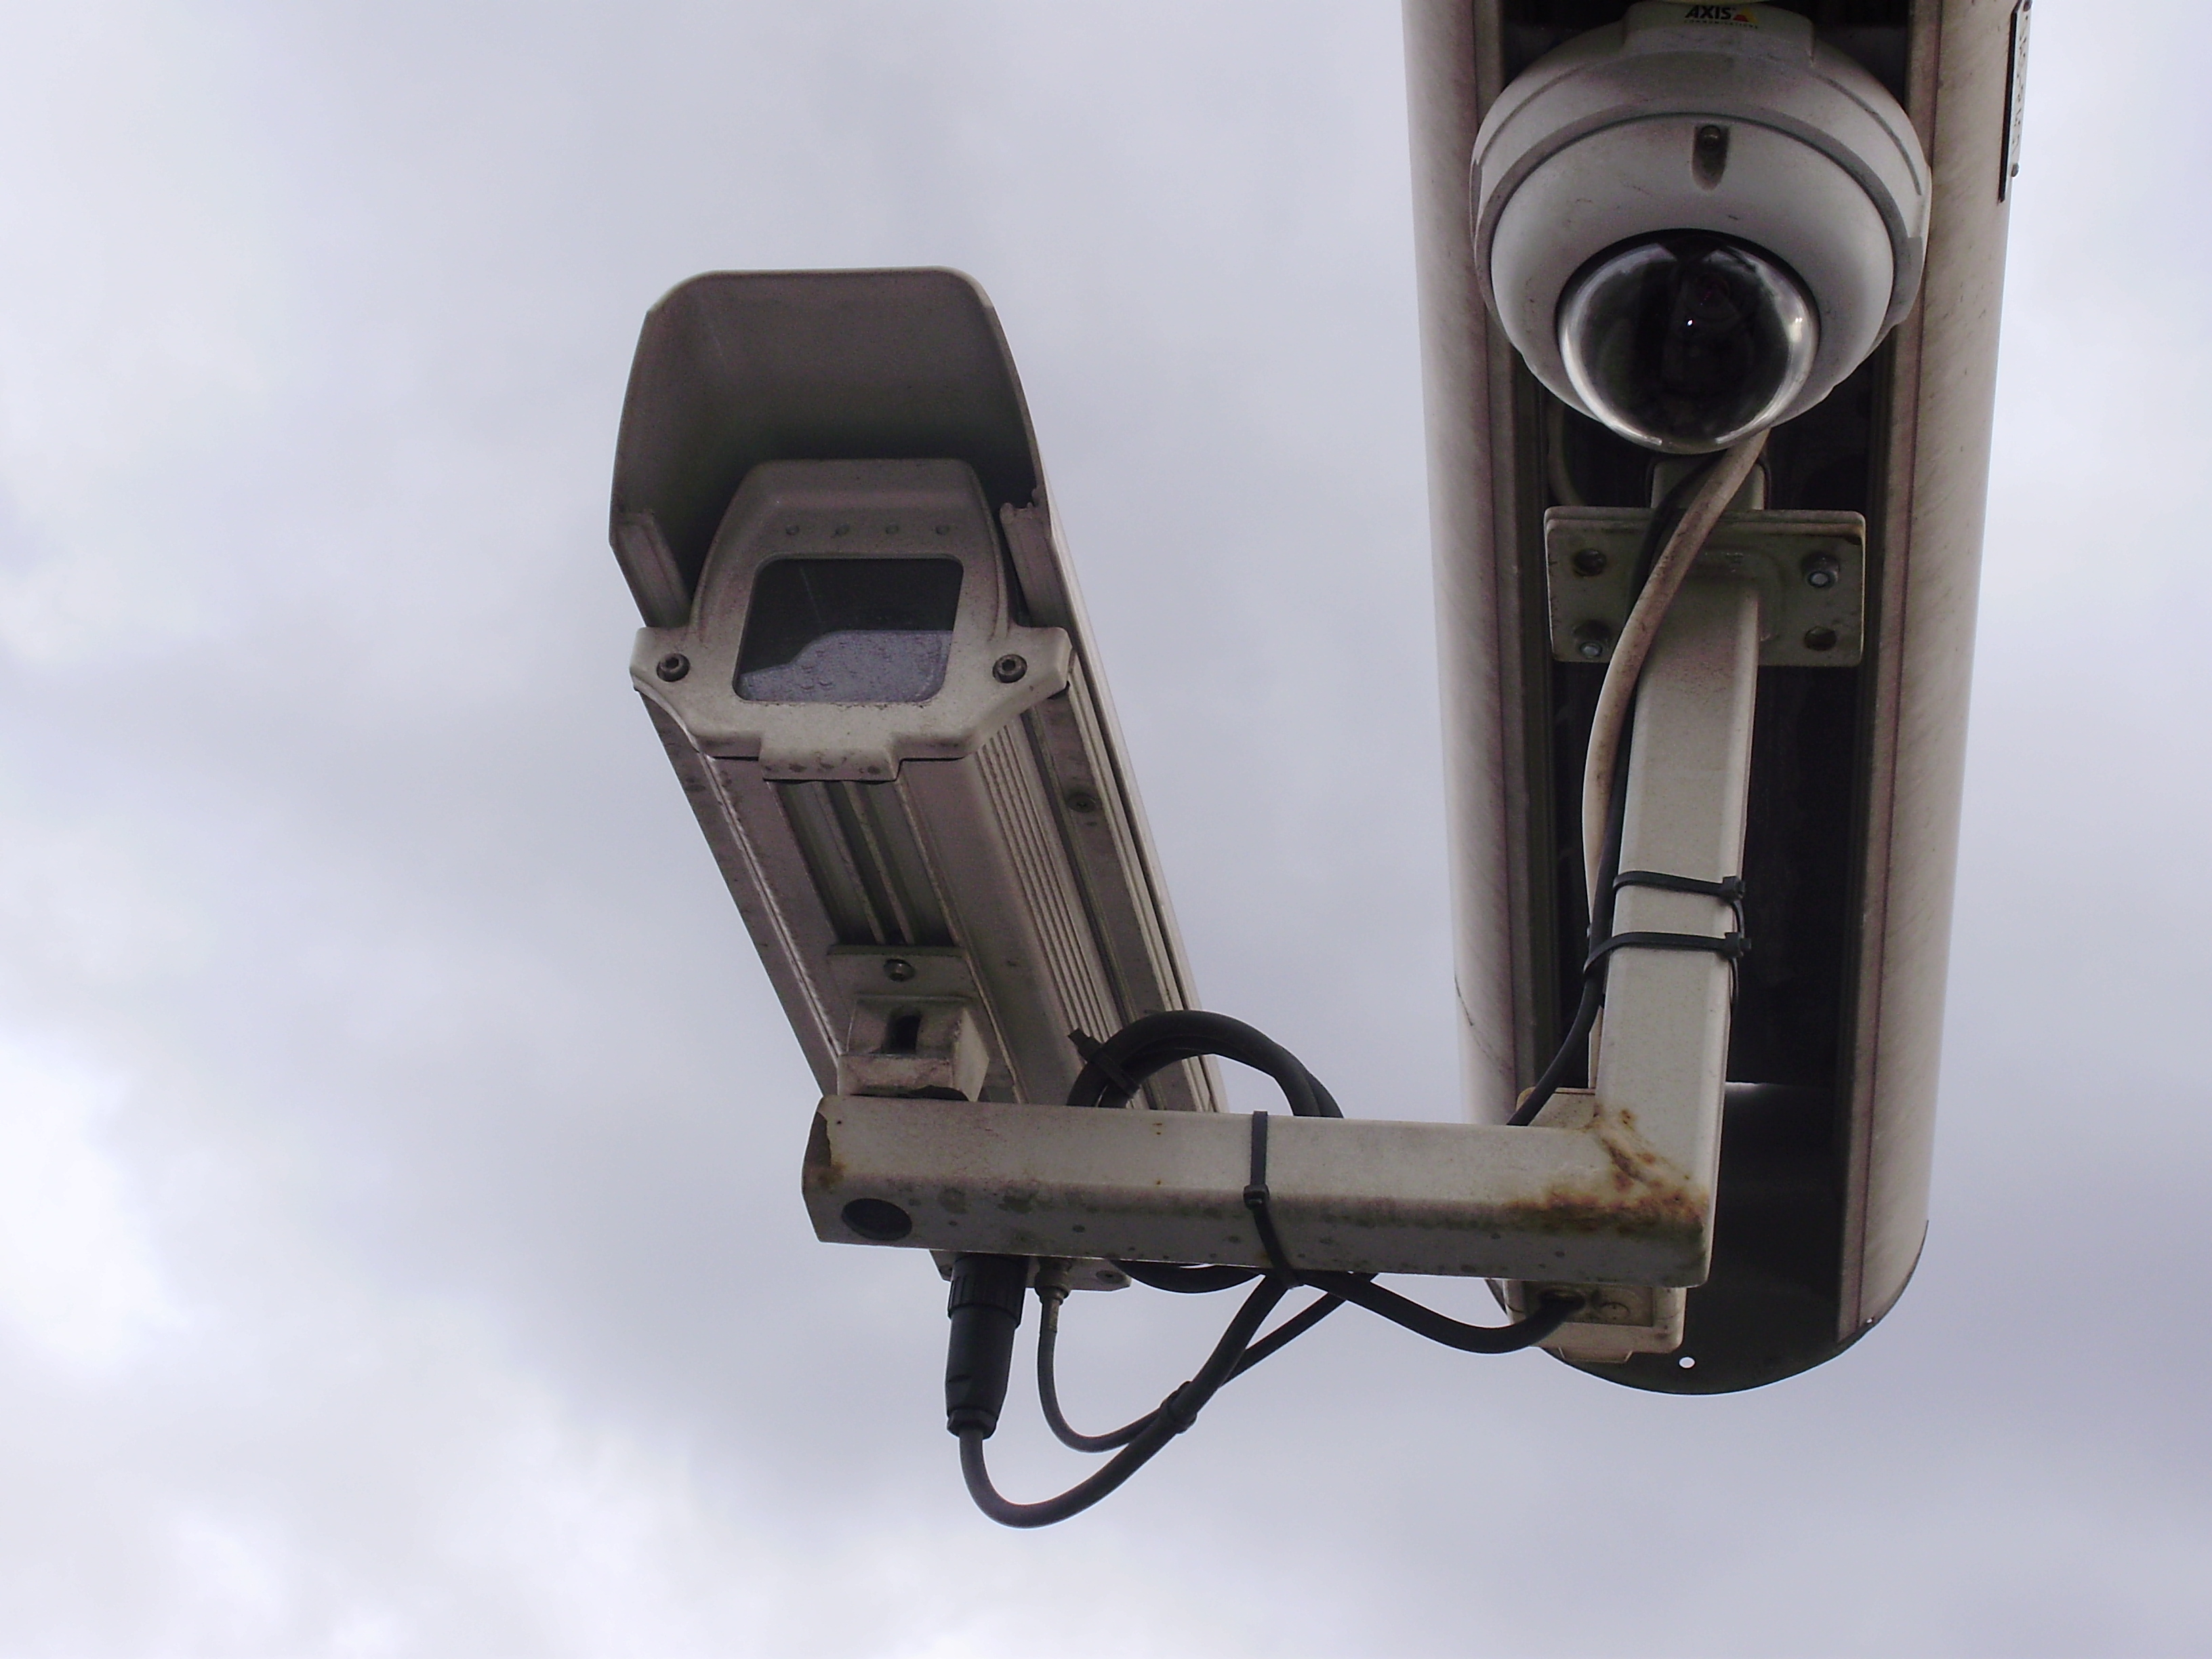 File:CCTV camera at Gamla Stan metro station in Stockholm